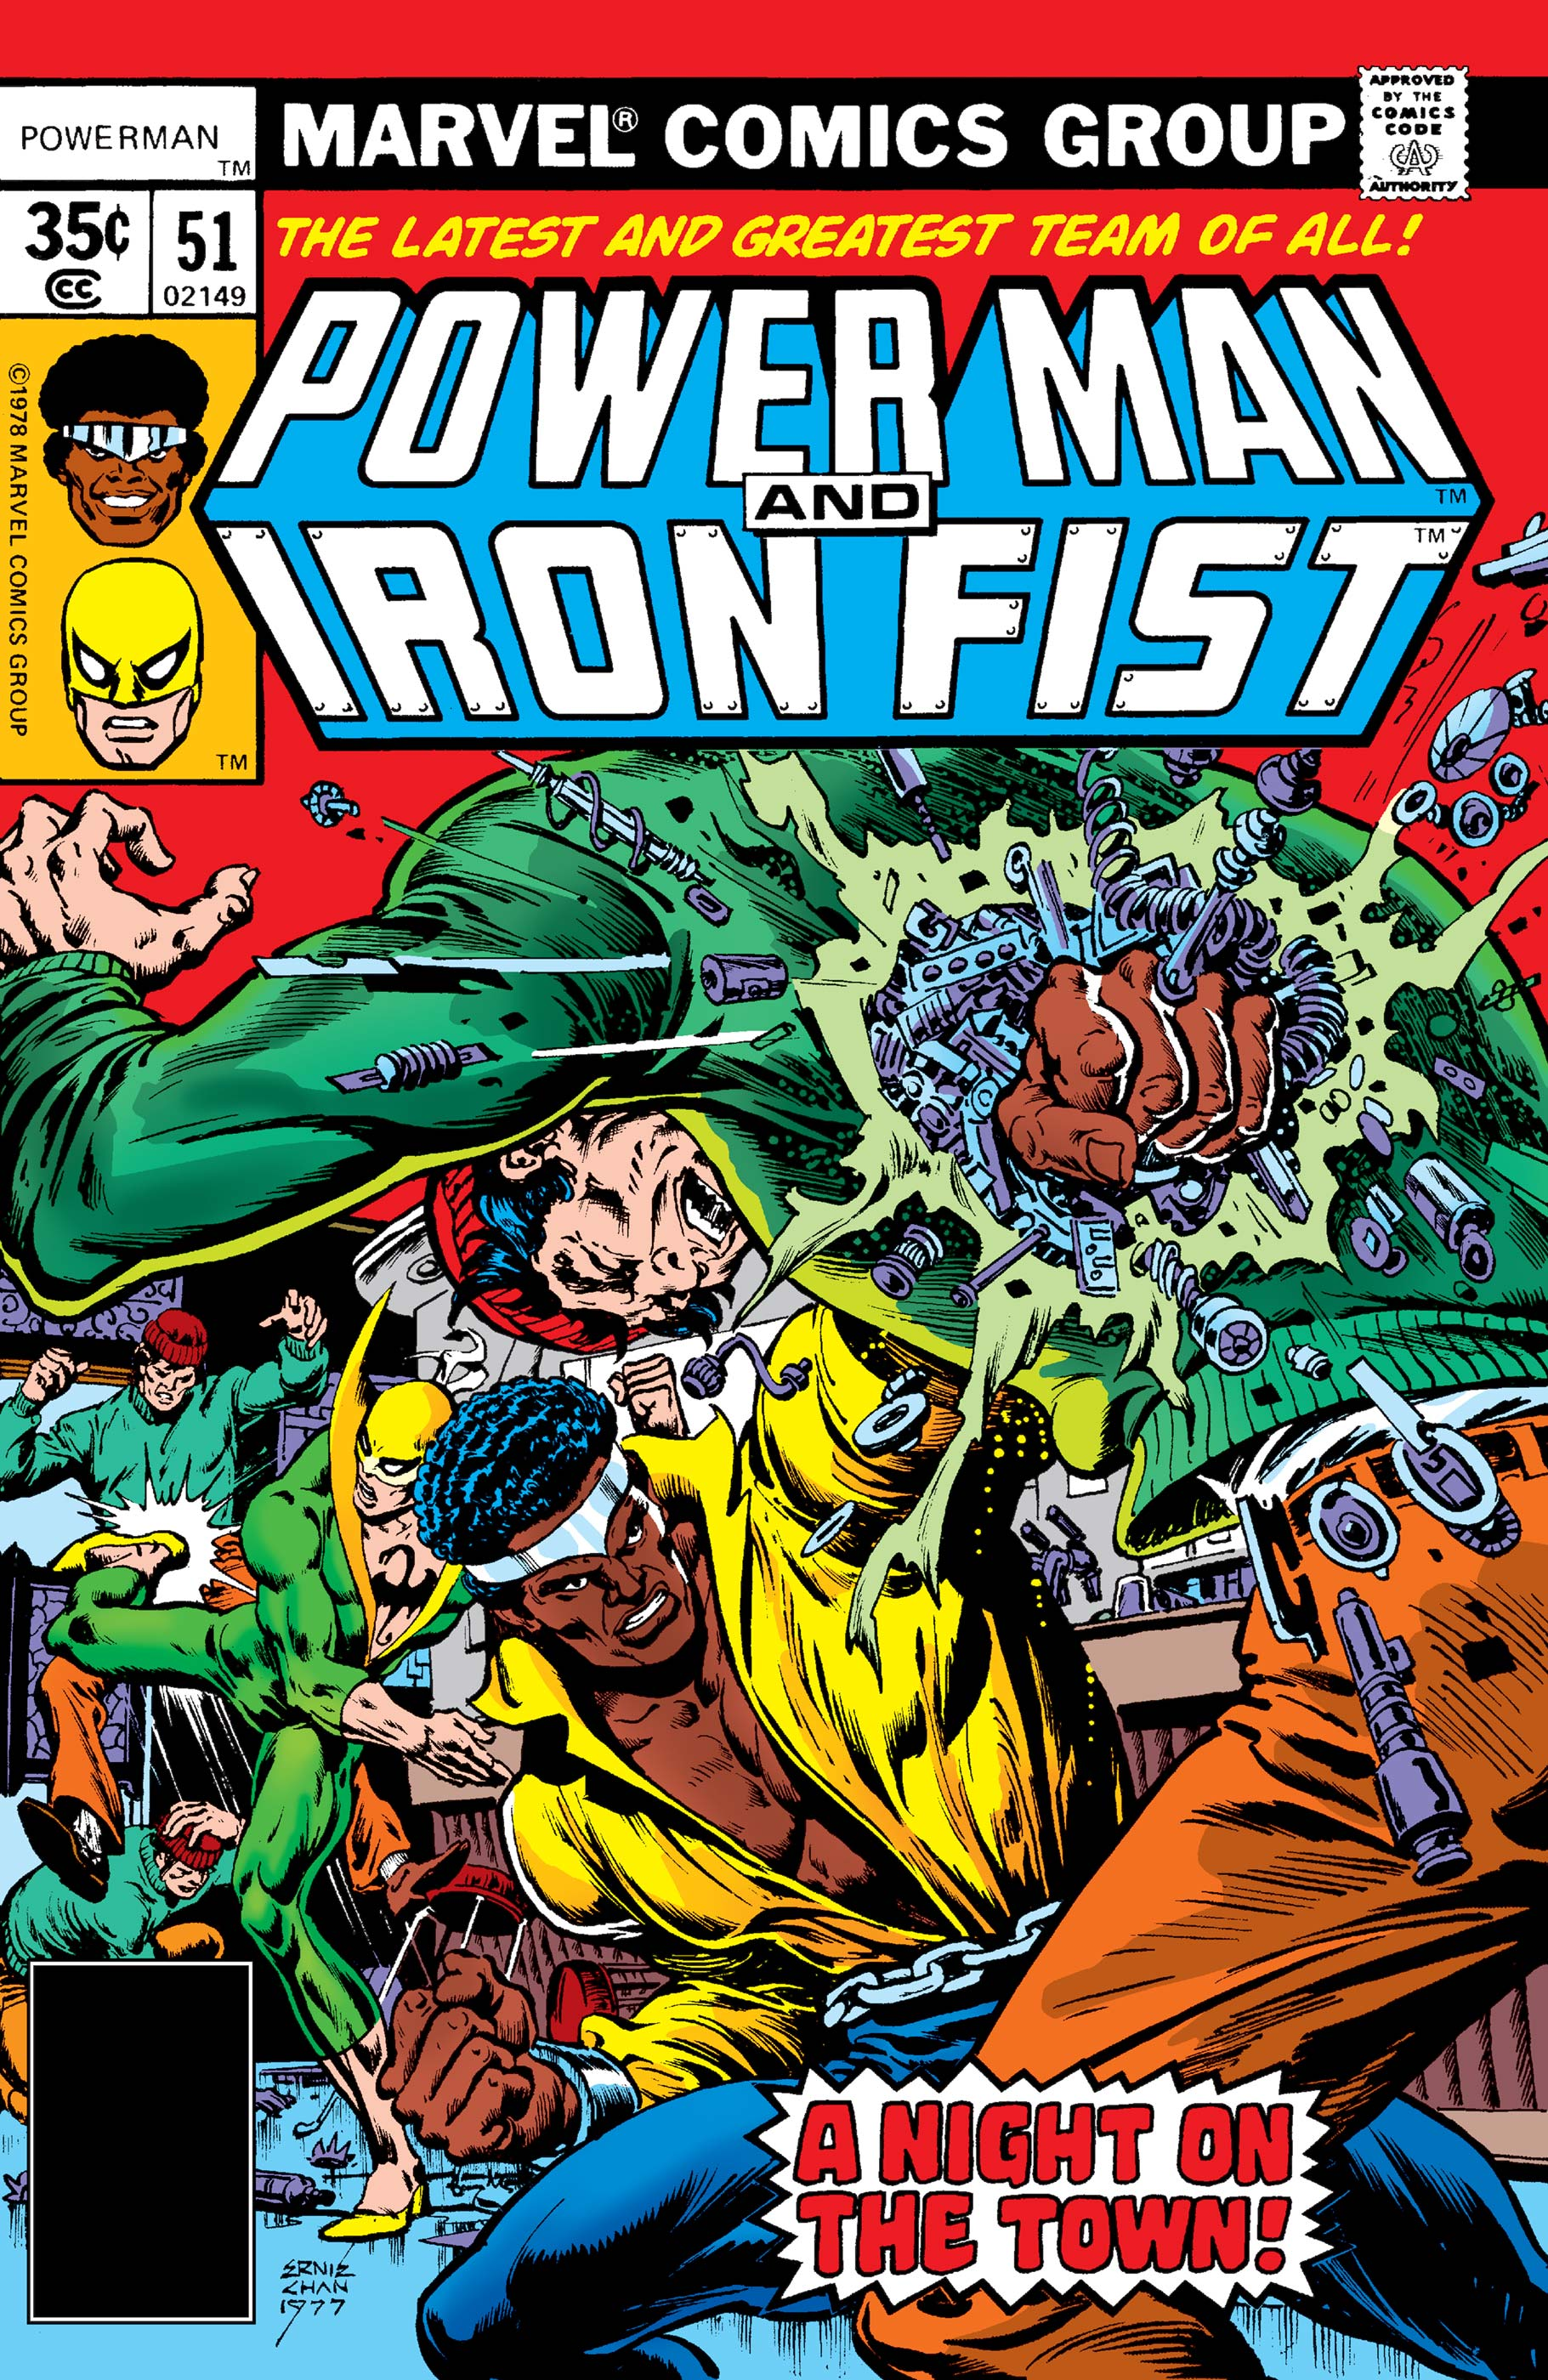 Power Man and Iron Fist (1978) #51